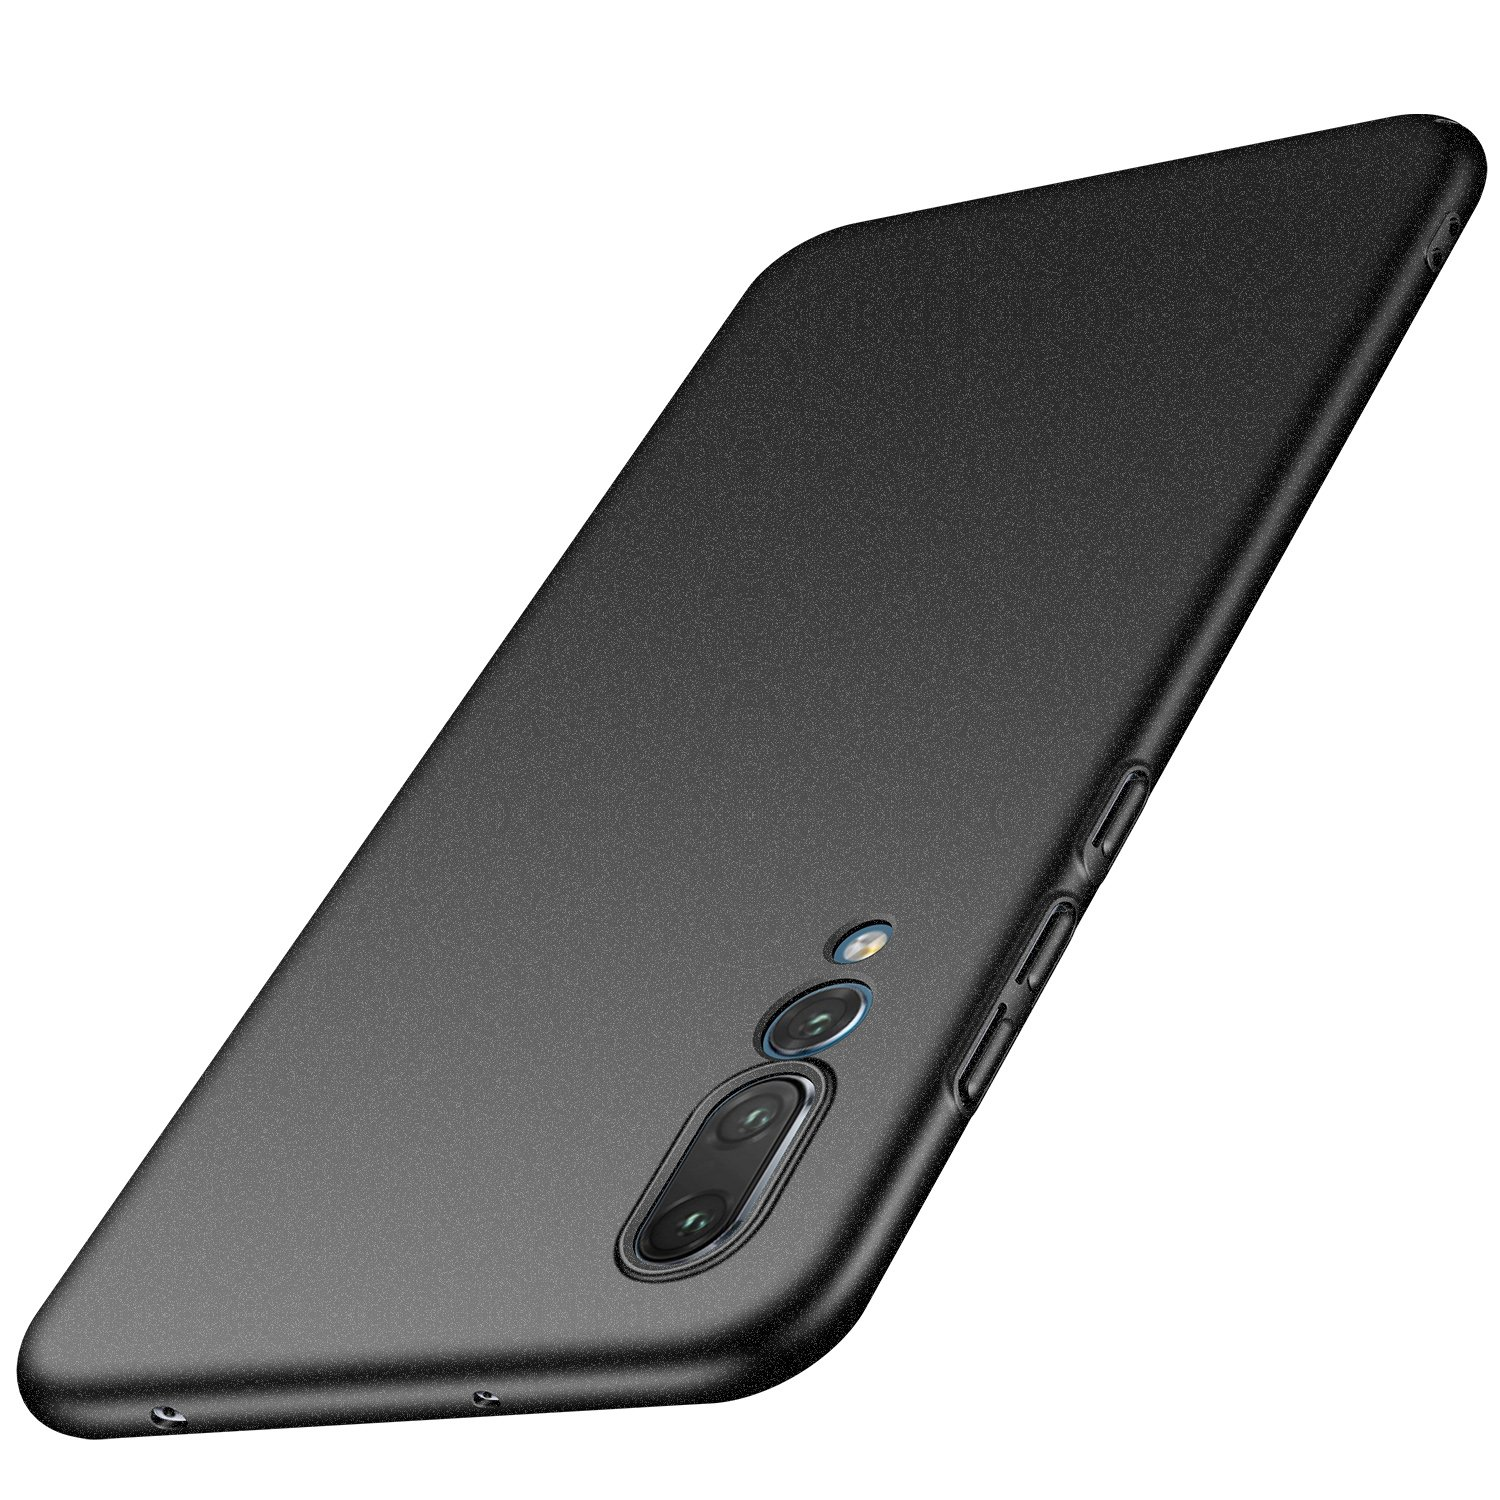 new style 3c716 29589 Anccer Huawei P20 Pro Case [Colorful Series] [Ultra-Thin] [Anti-Drop]  Premium Material Slim Full Protection Cover for Huawei P20 Pro 2018 (Matte  Gray)